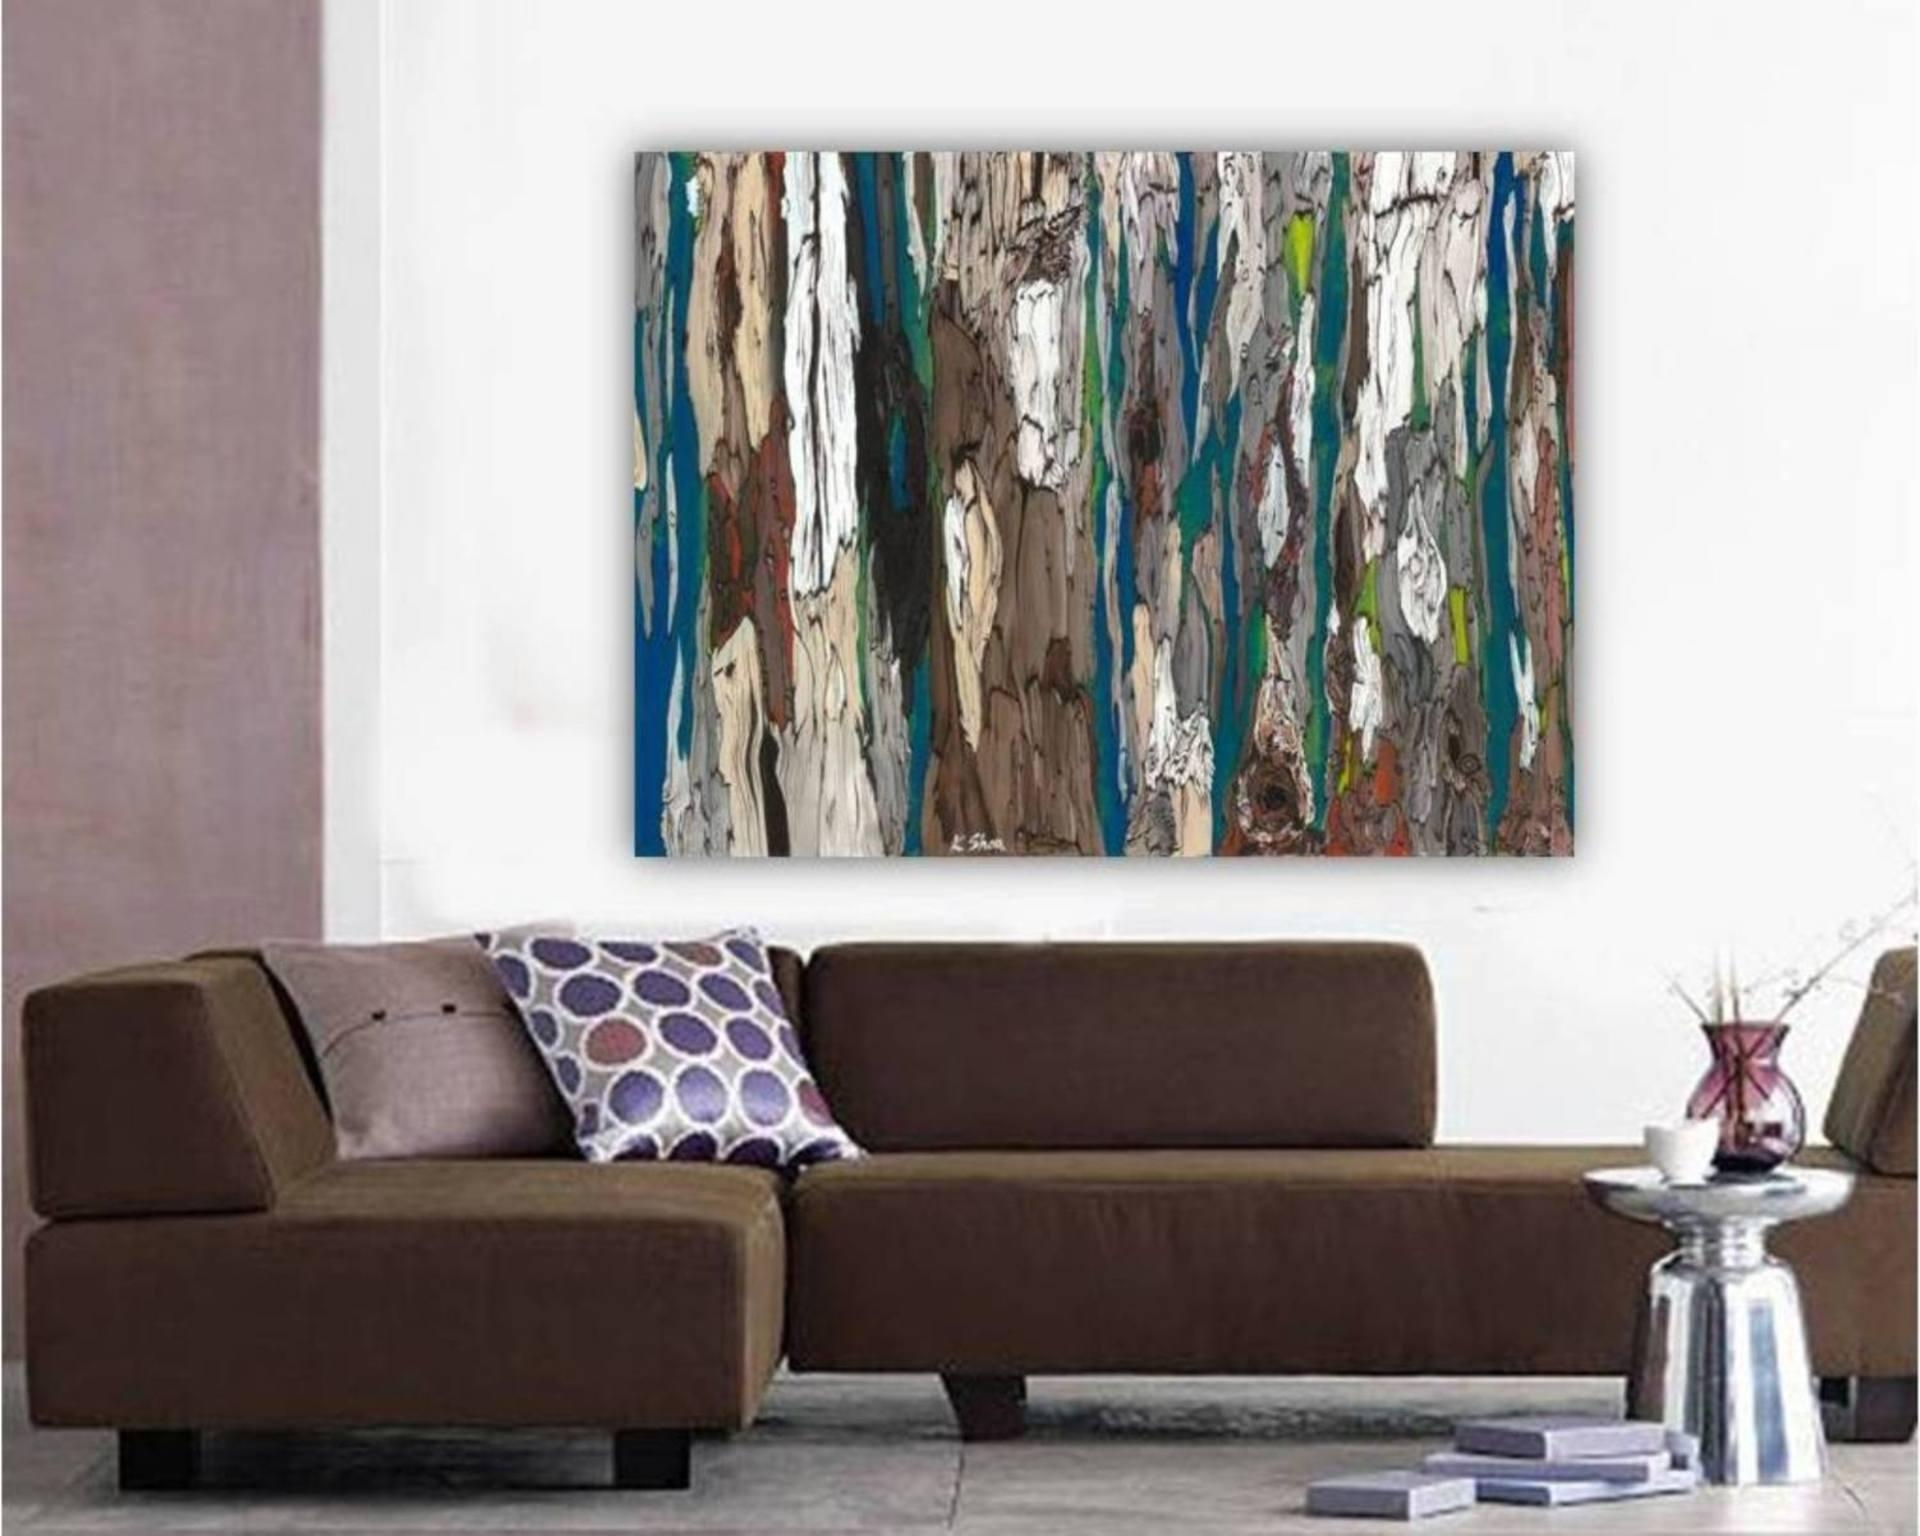 Wall Design: Abstract Wall Art Images (Image 15 of 20)